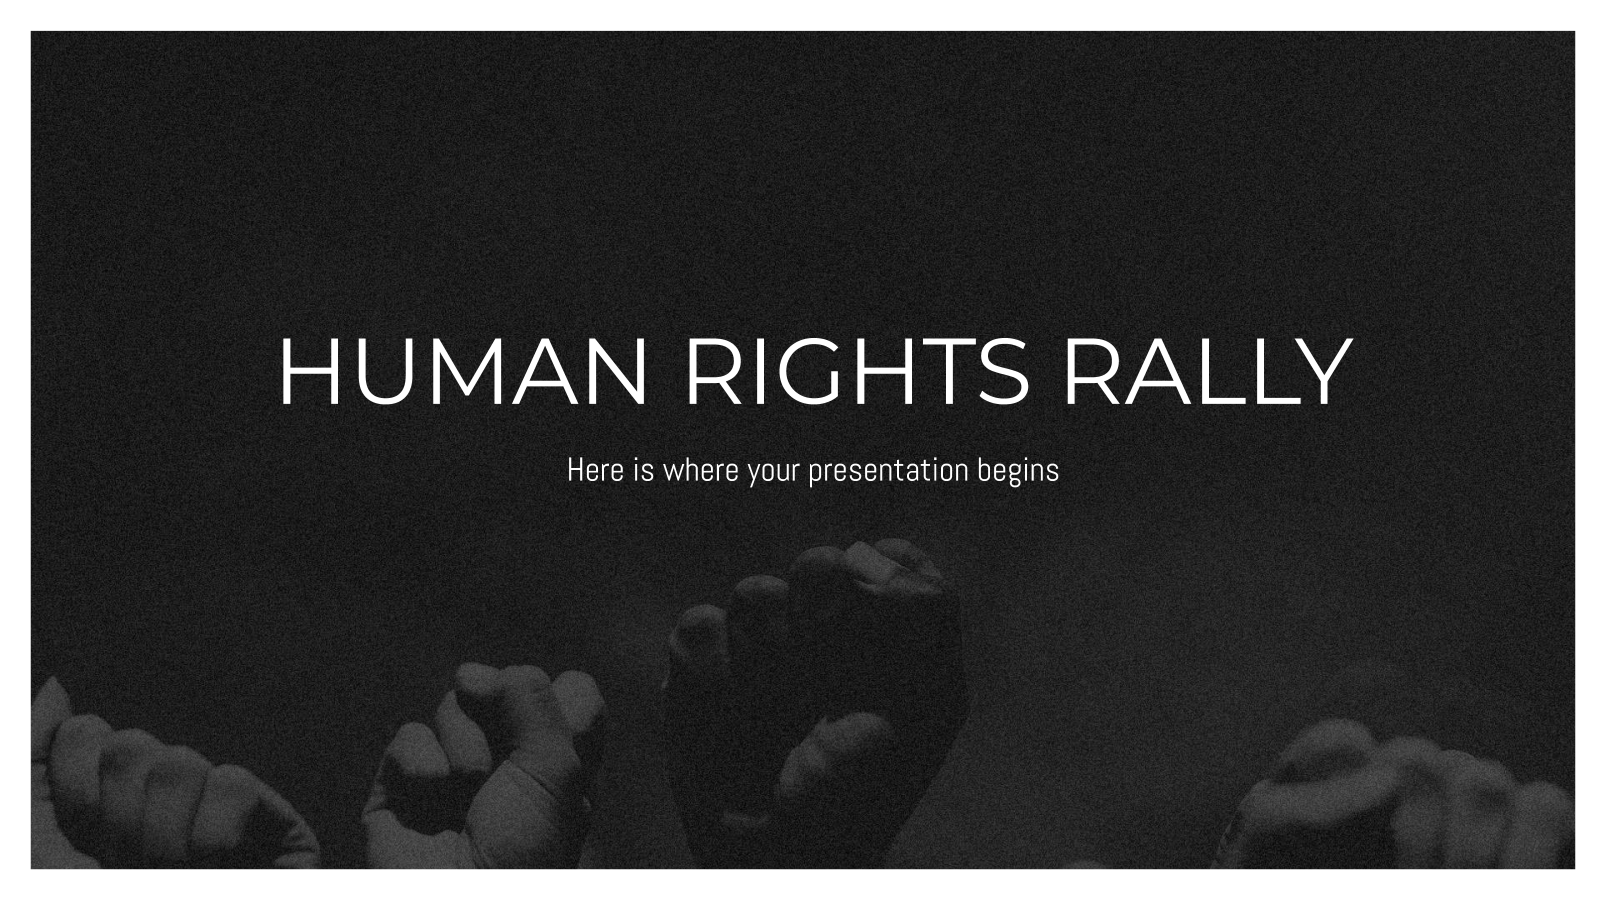 Human Rights Rally presentation template